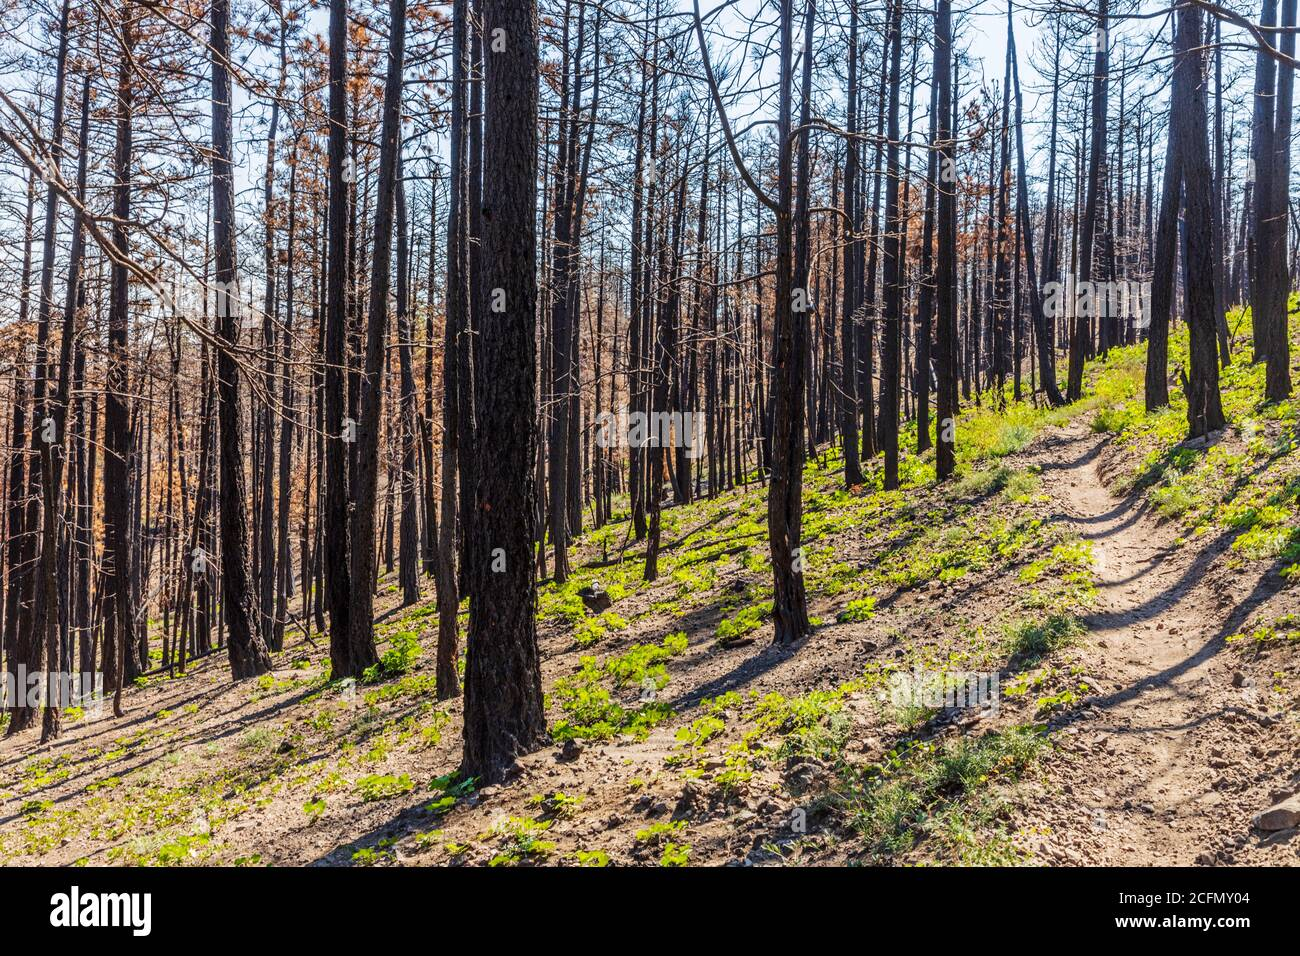 Regeneration of trees & plants that burned in forest fire; Rocky Mountains, Central Colorado, USA Stock Photo